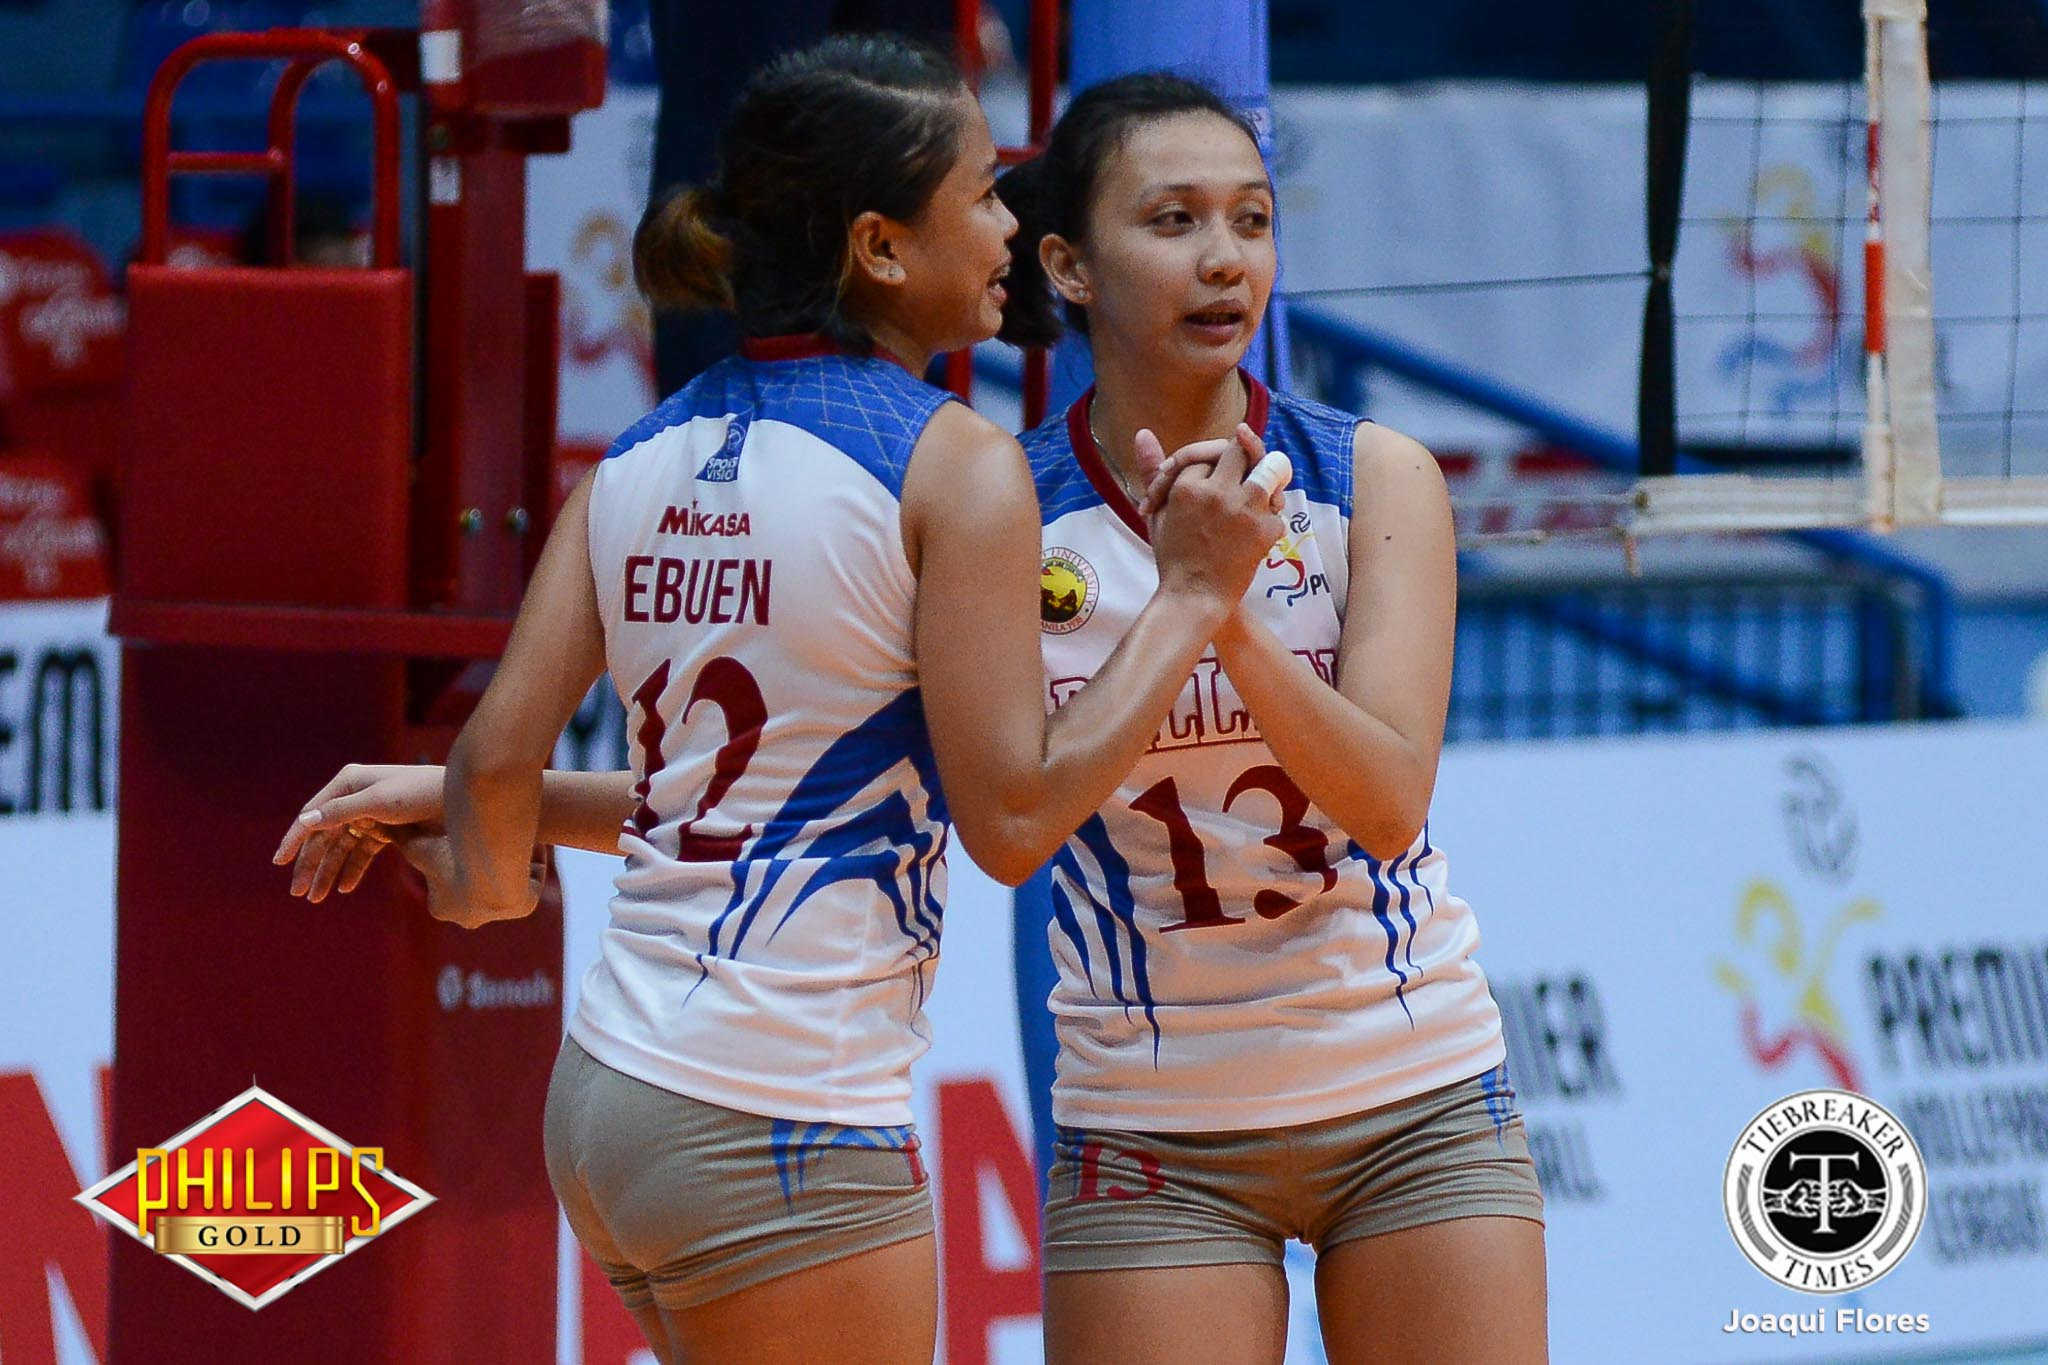 Philippine Sports News - Tiebreaker Times For Coach Obet: Lady Chiefs dump Lady Engineers for third win AU News PVL Volleyball  TIP Lady Engineers Rhea Ramirez Regine Arocga Michael Santos Jade Gentapa Faye Flores Boy Paril Arellano Women's Volleyball Andrea Marzan Alyssa Layug 2017 PVL Women's Collegiate Conference 2017 PVL Season